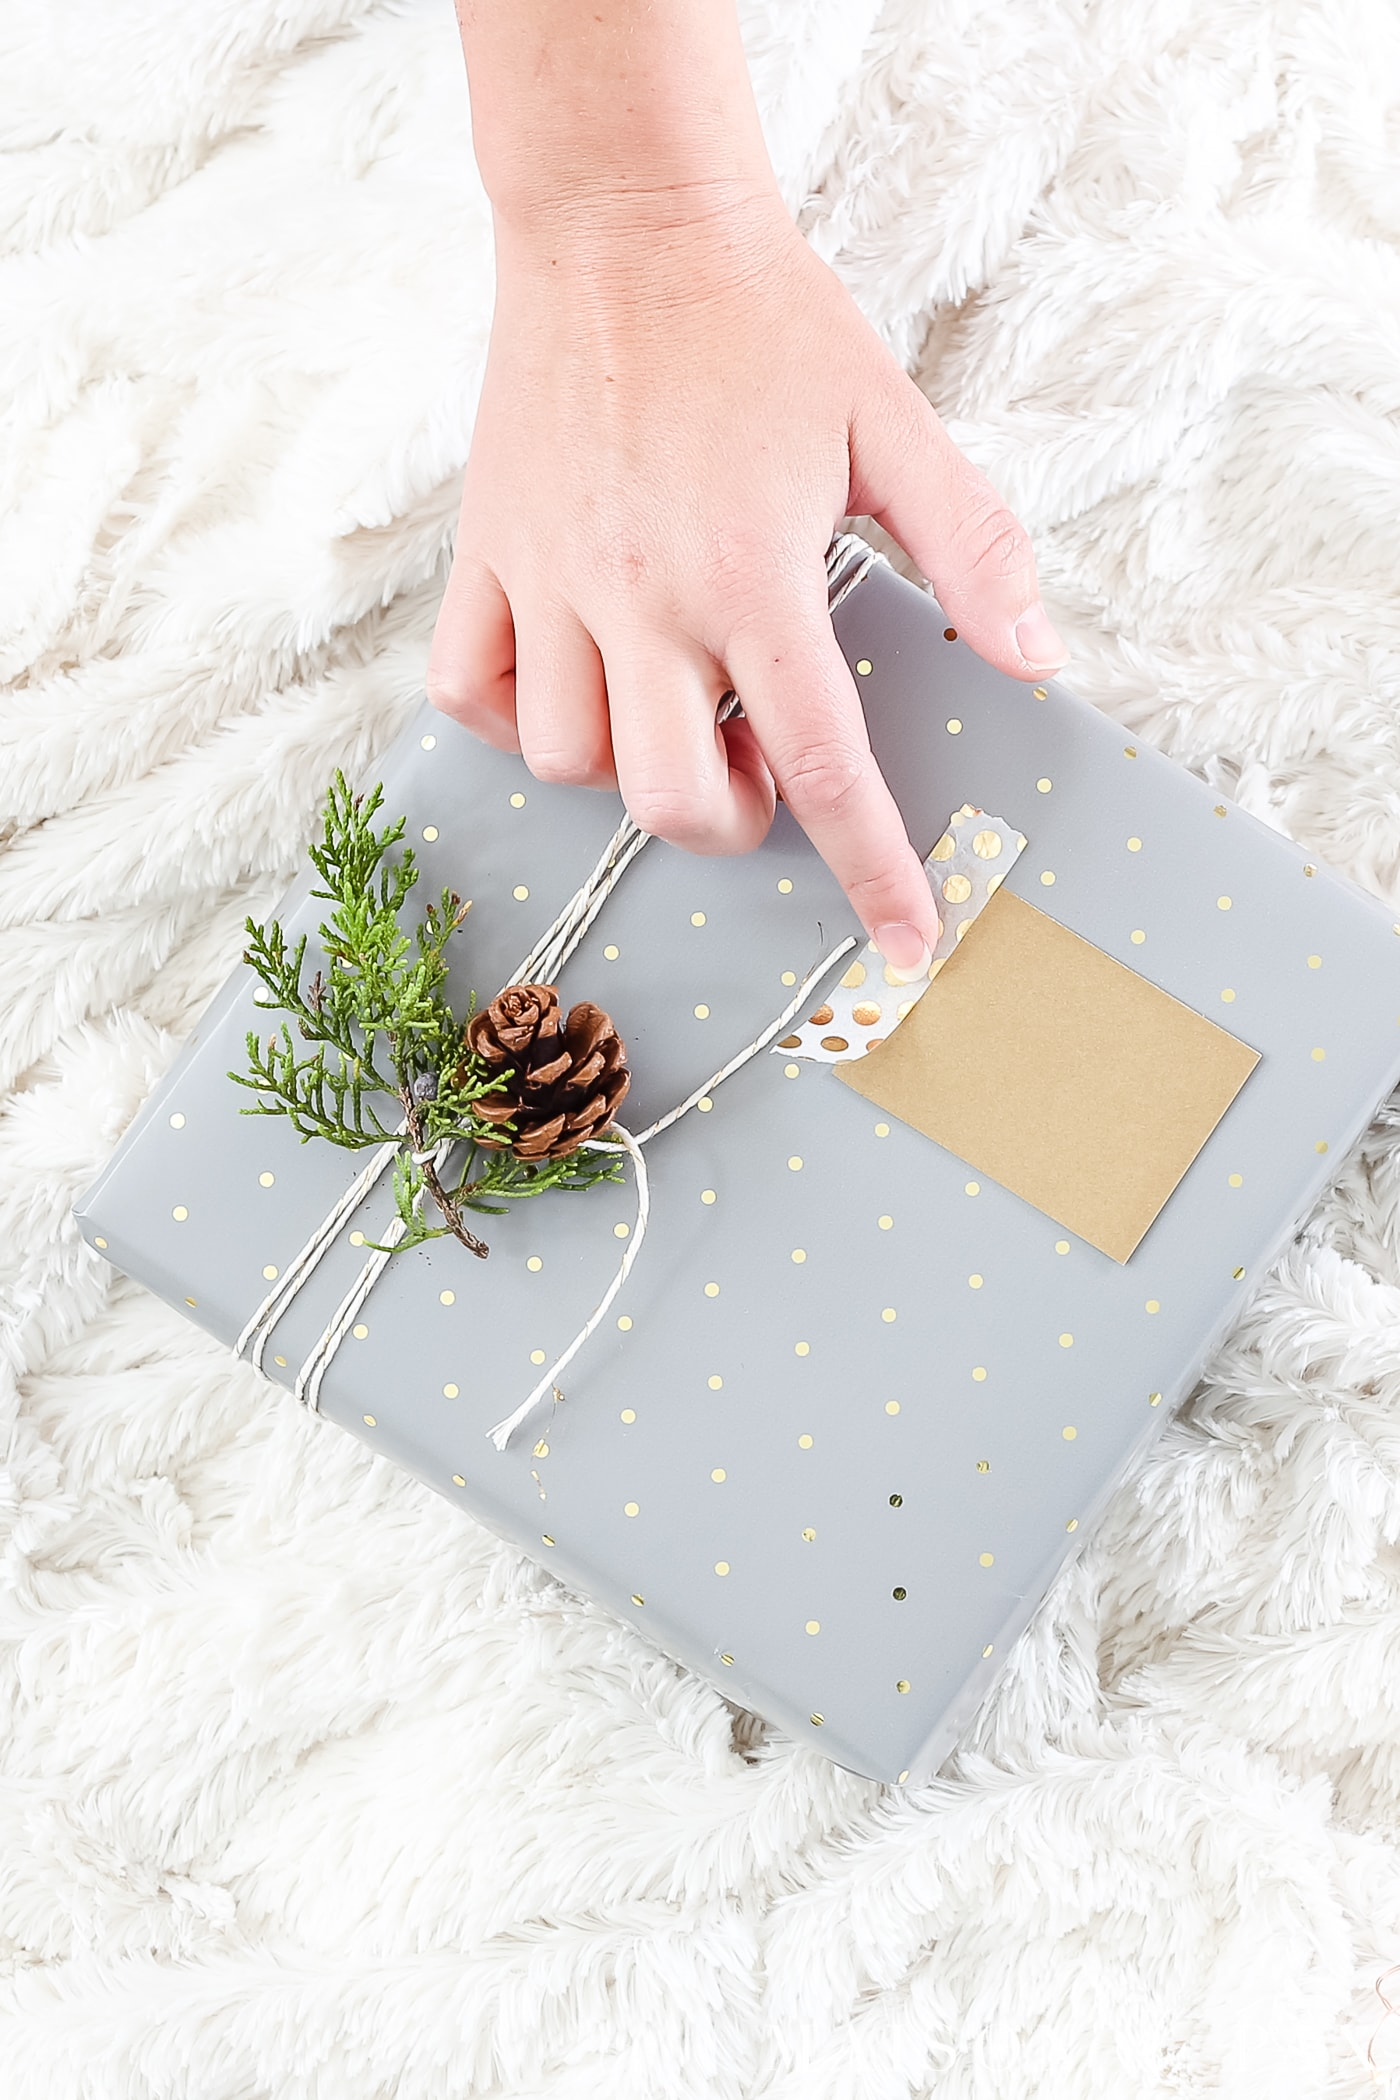 easy gift wrapping ideas: secure gift tags with a quick strip of washi tape #christmaspresents #giftwrap